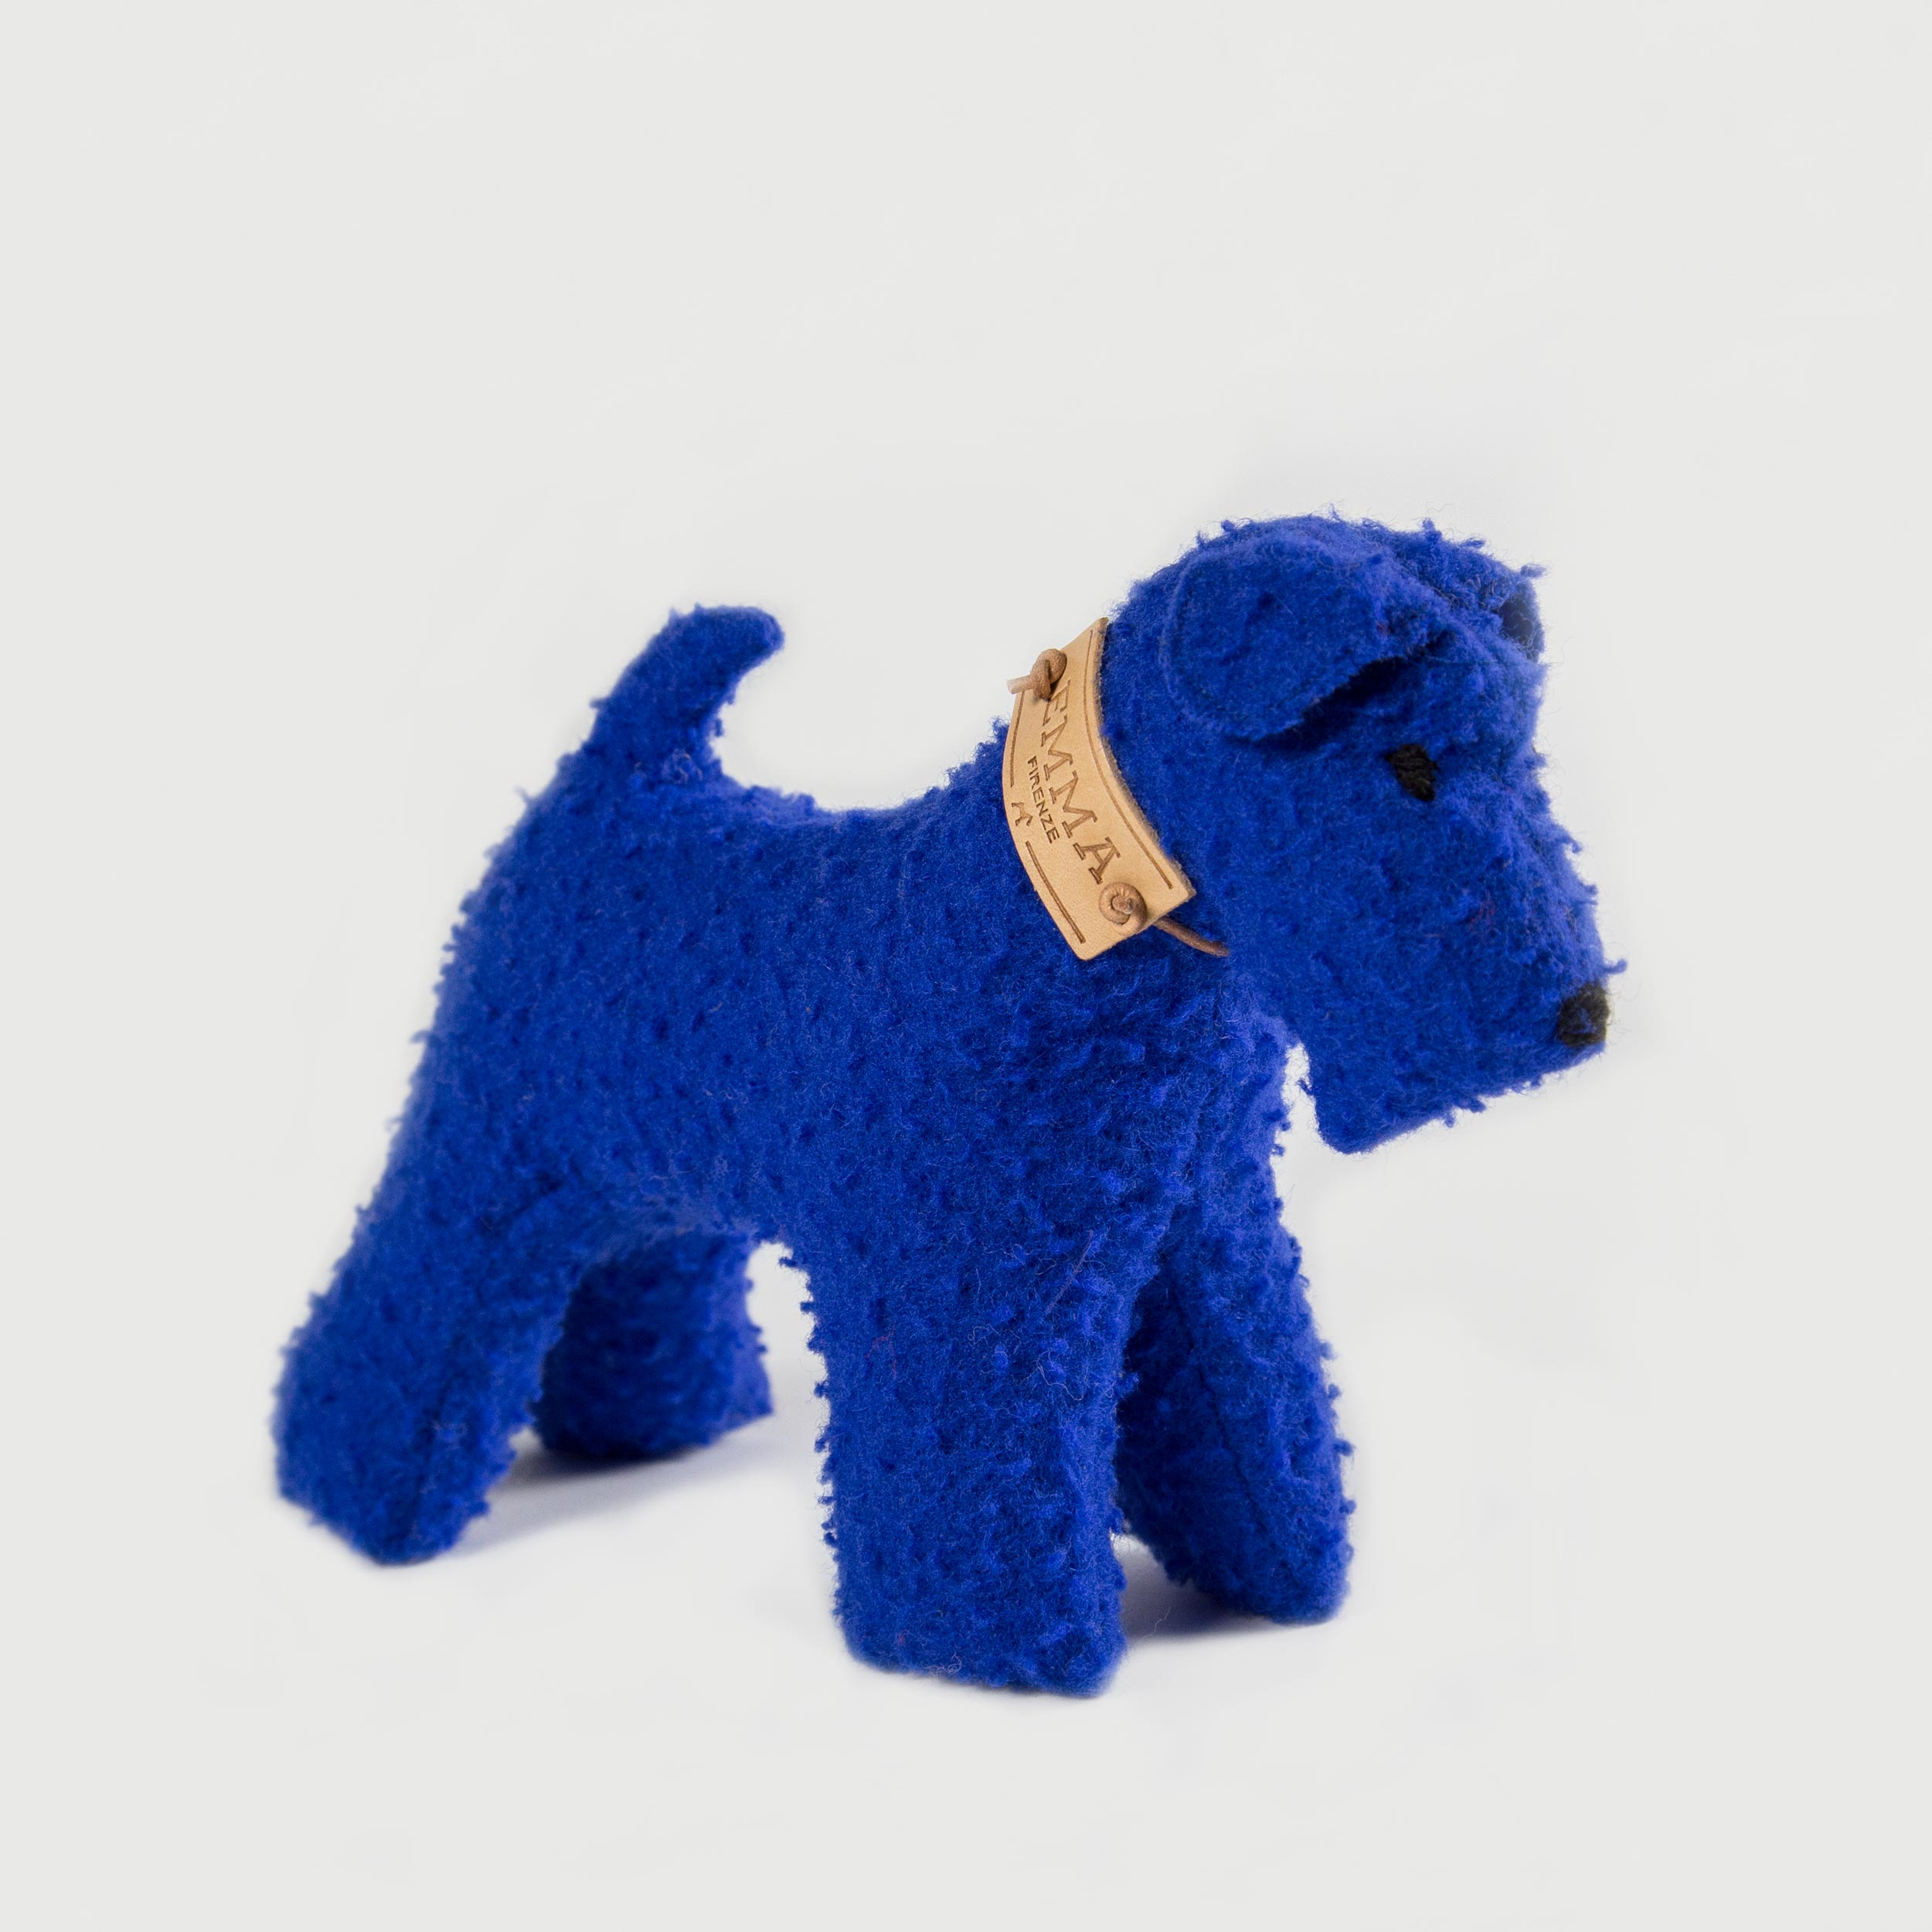 gift toy in blue casentino fabric